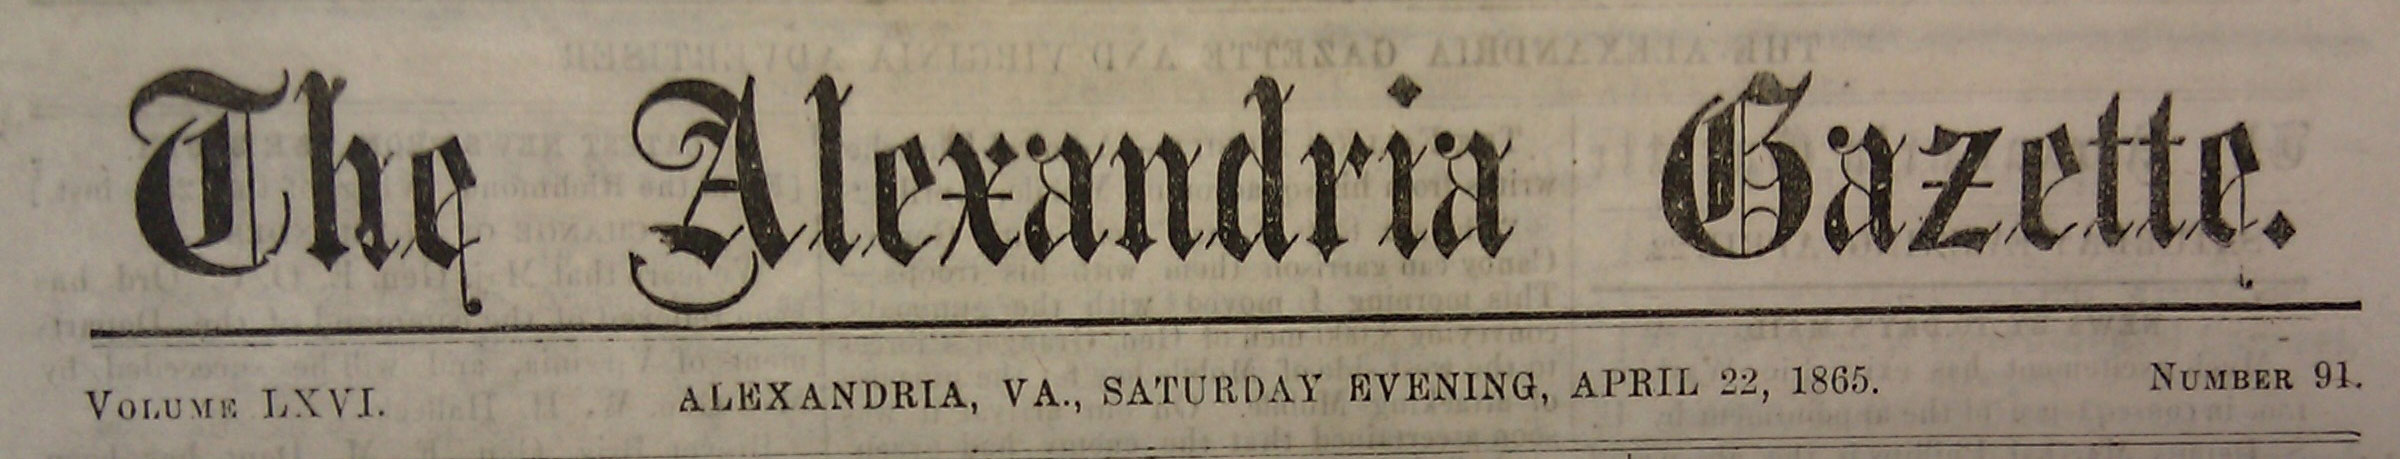 Newspaper Accounts on the Death of Lincoln